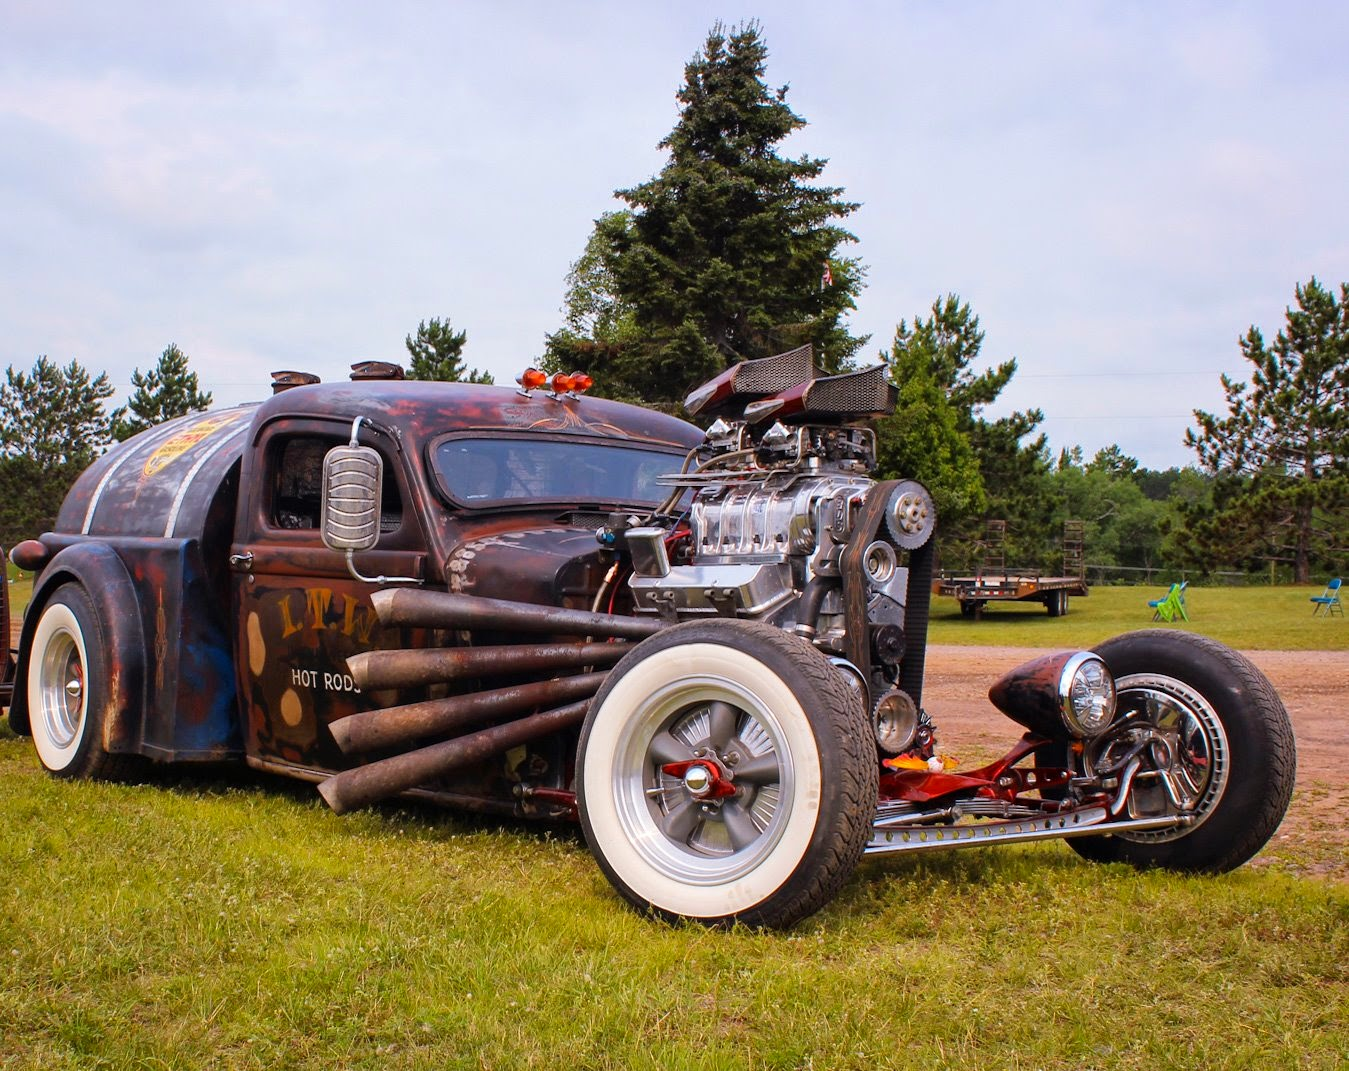 American Rat Rod Cars & Trucks For Sale: More Insane Rat Rods